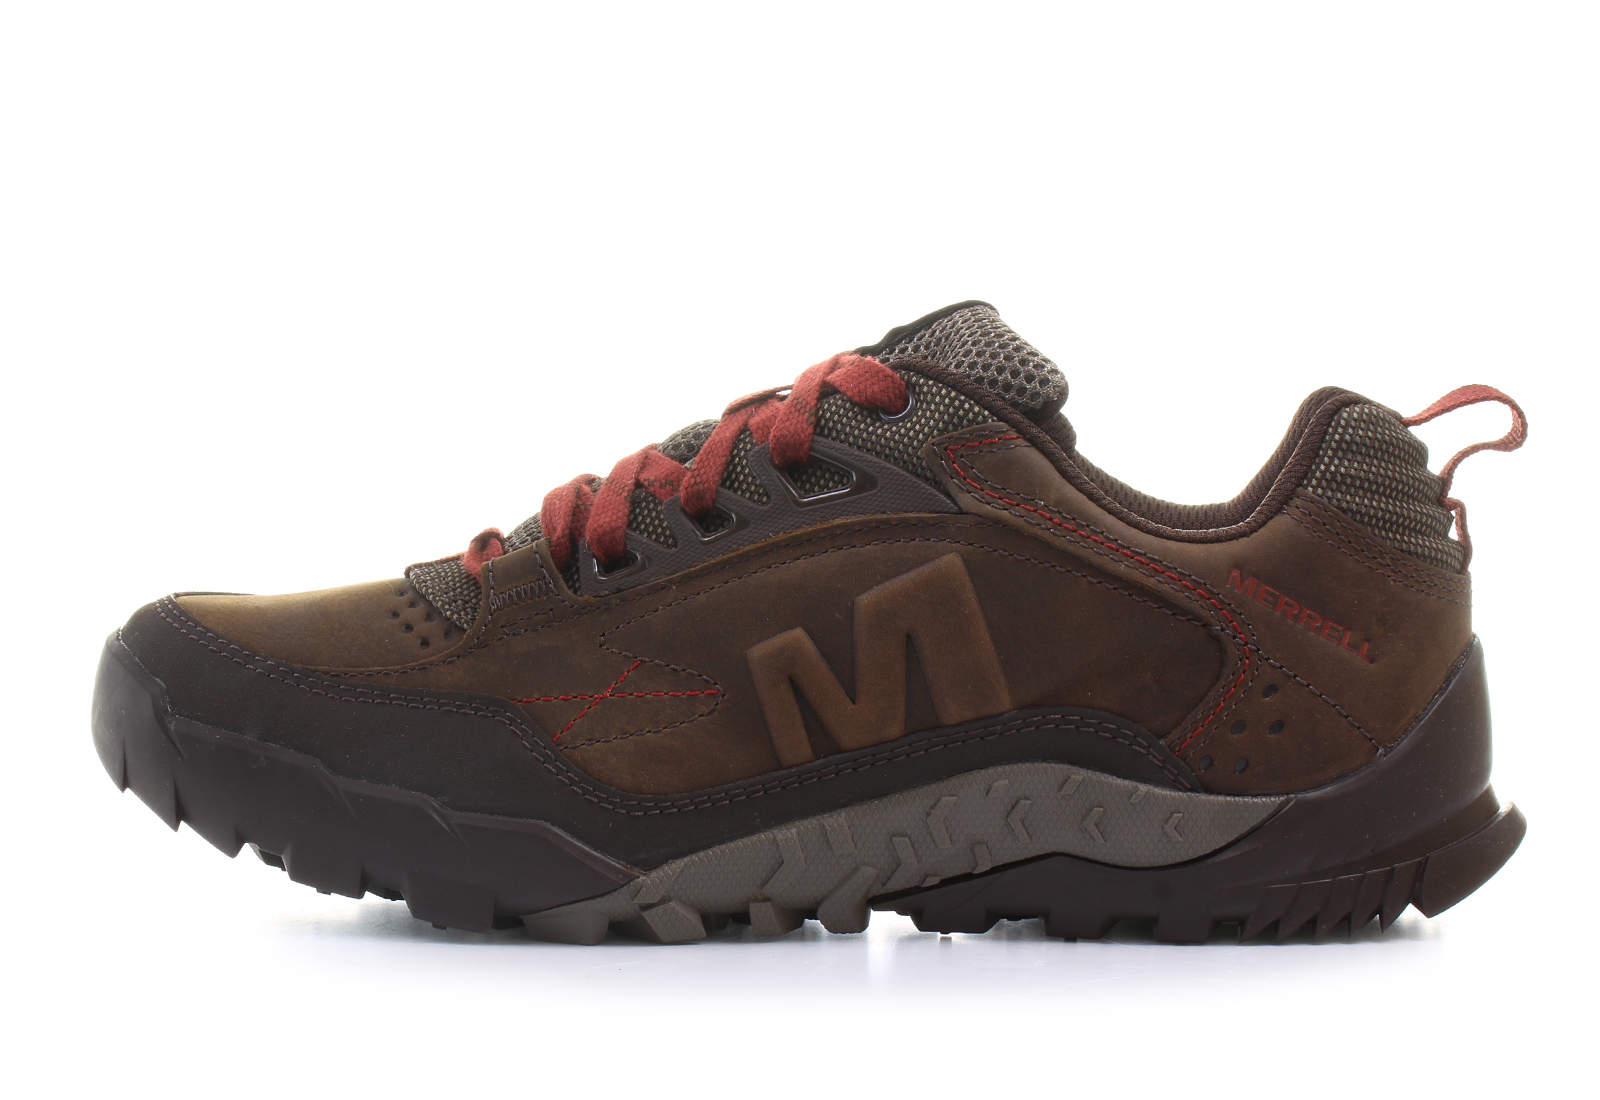 Merrell Shoes - Annex Trak Low - J91805-cly - Online shop for ... 40a1c997eb